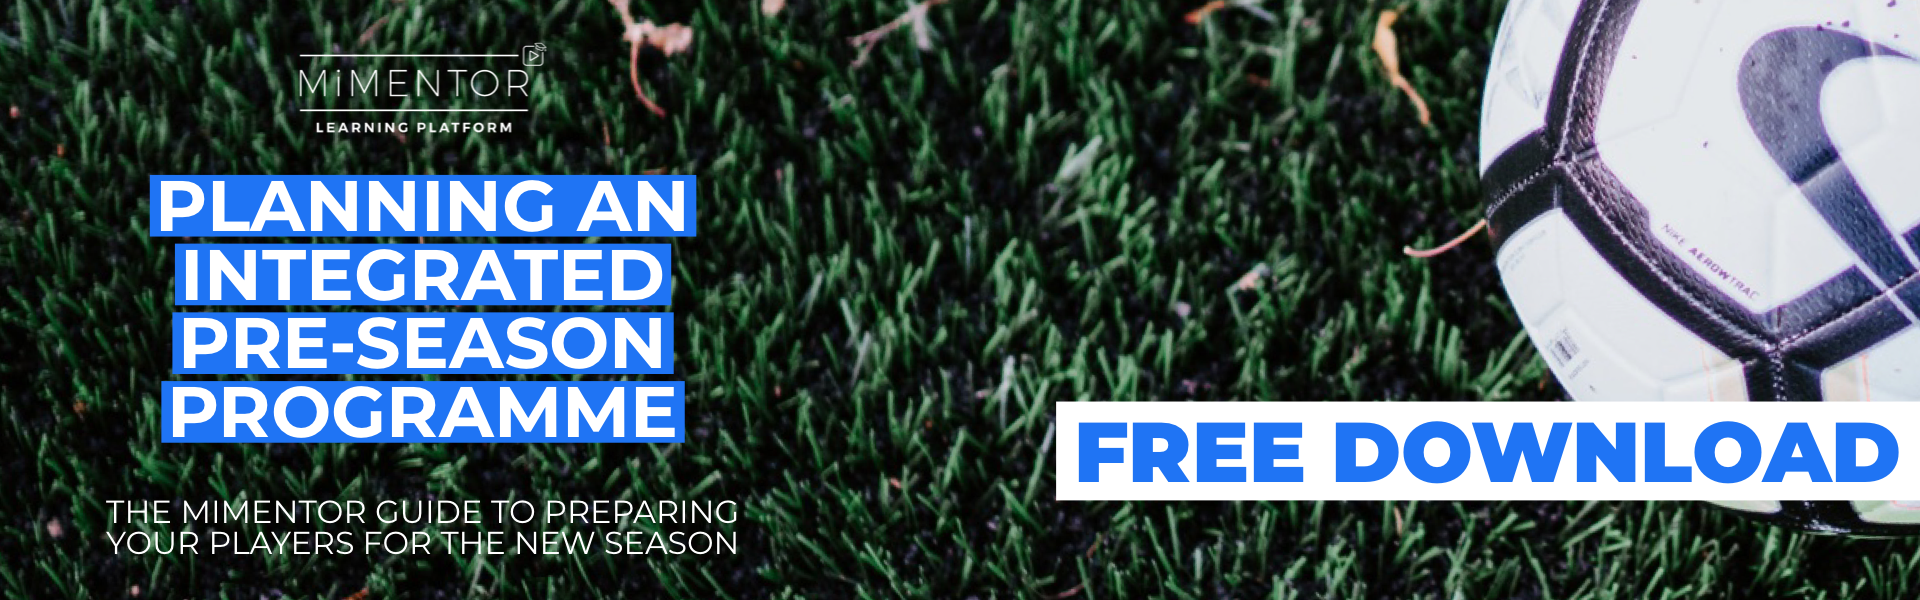 FREE DOWNLOAD: Planning an integrated pre-season programme